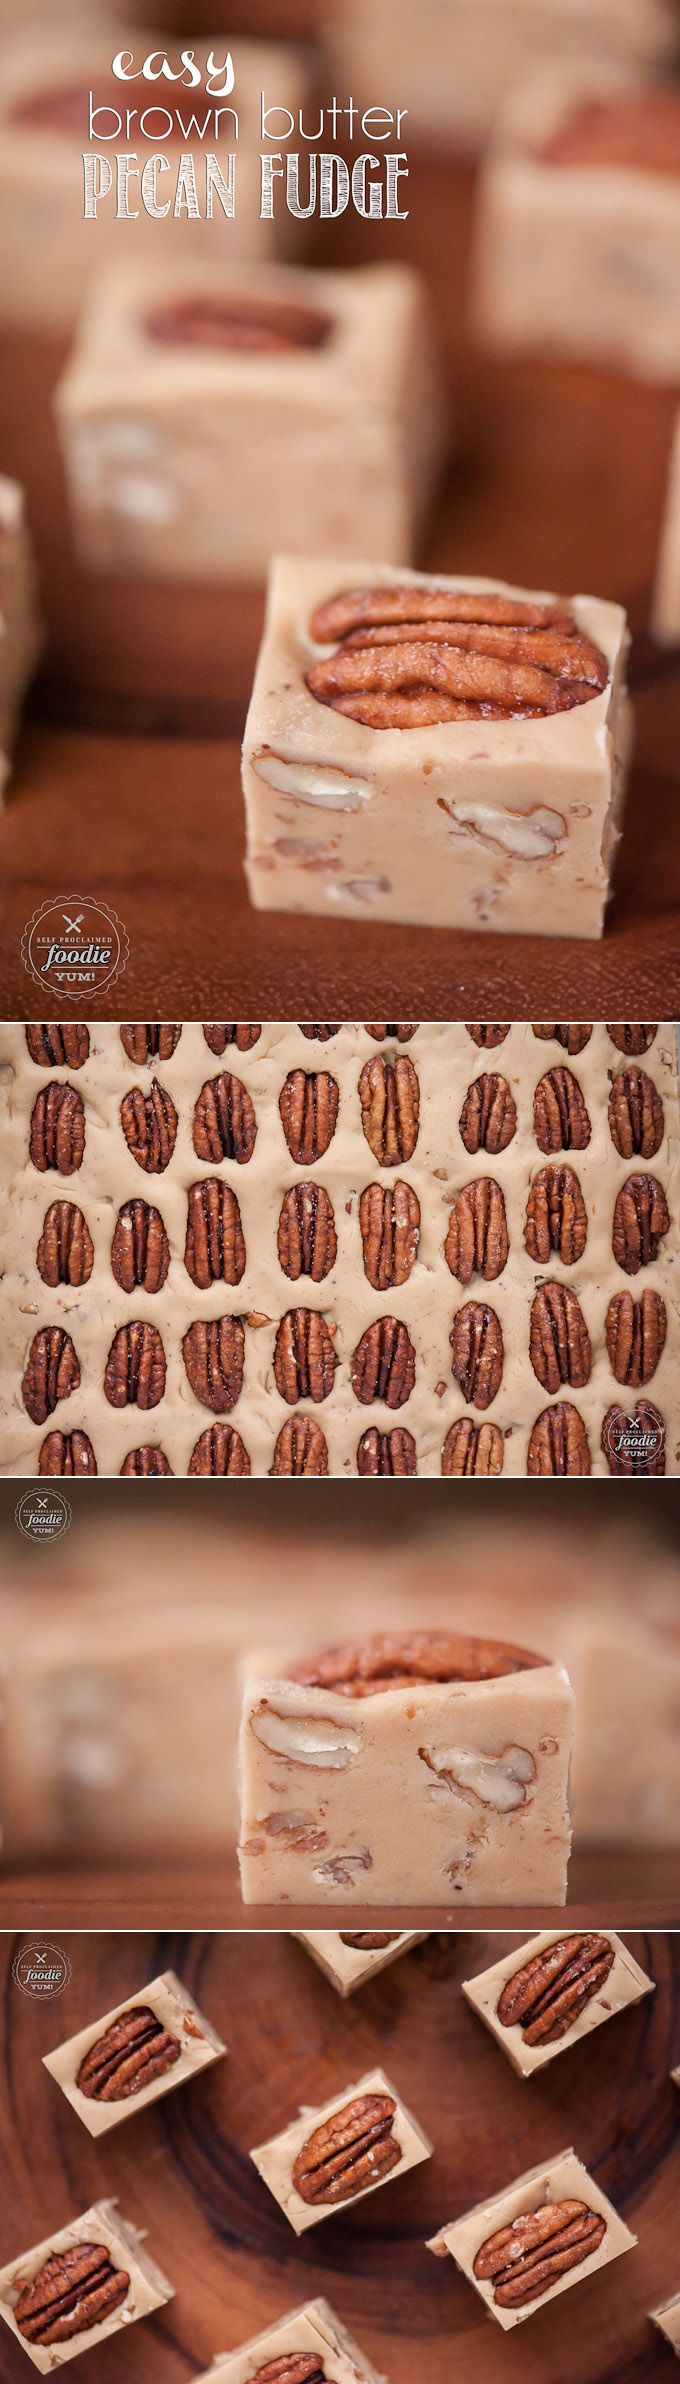 This Easy Brown Butter Pecan Fudge is full of the flavors of candied pecans and buttery caramel. This easy to make candy is the perfect dessert treat.